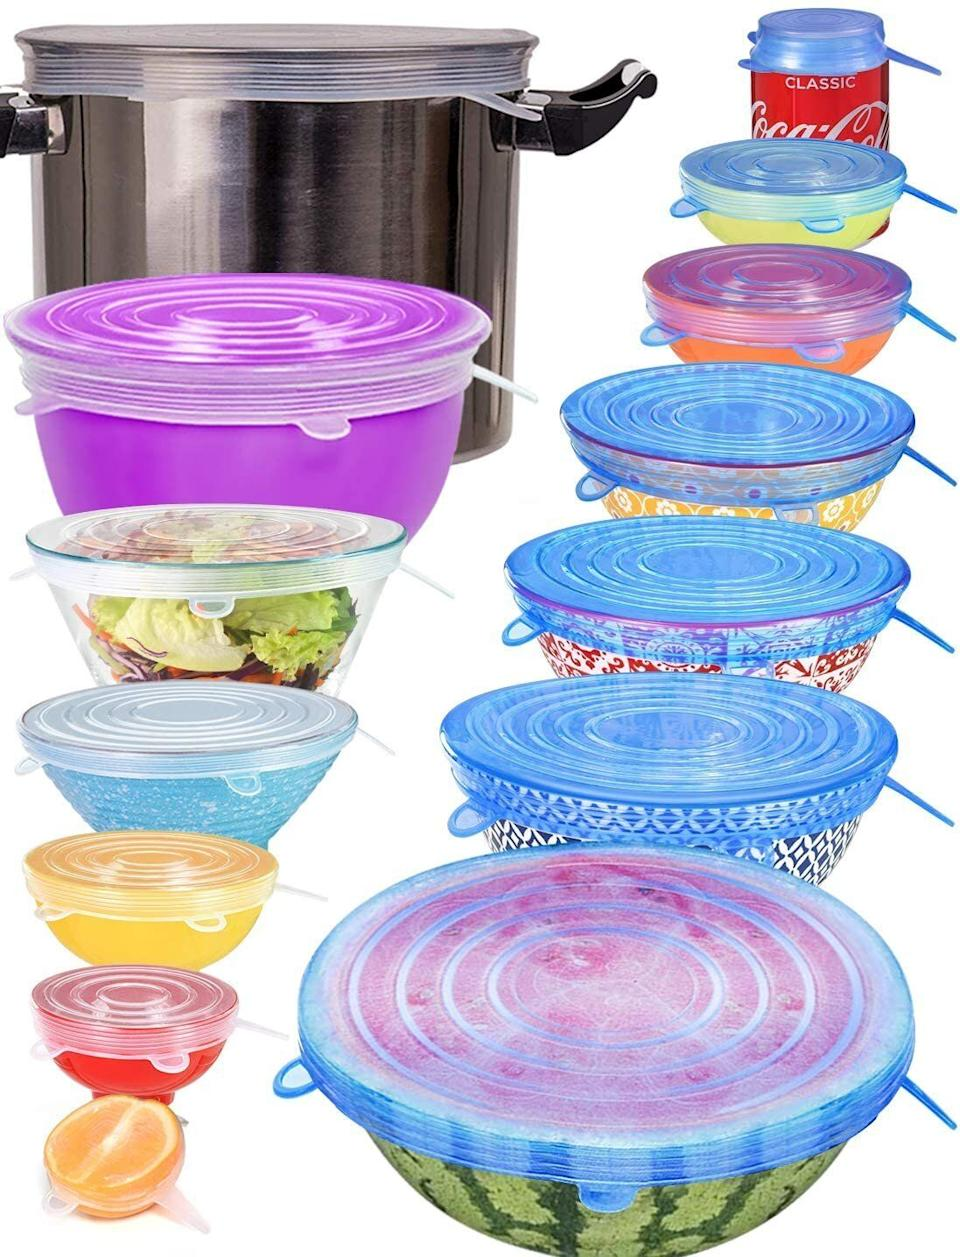 "From a can of soda to a bowl of chips, this <a href=""https://amzn.to/35jy169"" target=""_blank"" rel=""noopener noreferrer"">set of silicone stretch lids</a> can work when you've made a meal for yourself or after you entertain guests. (Photo: Amazon)"